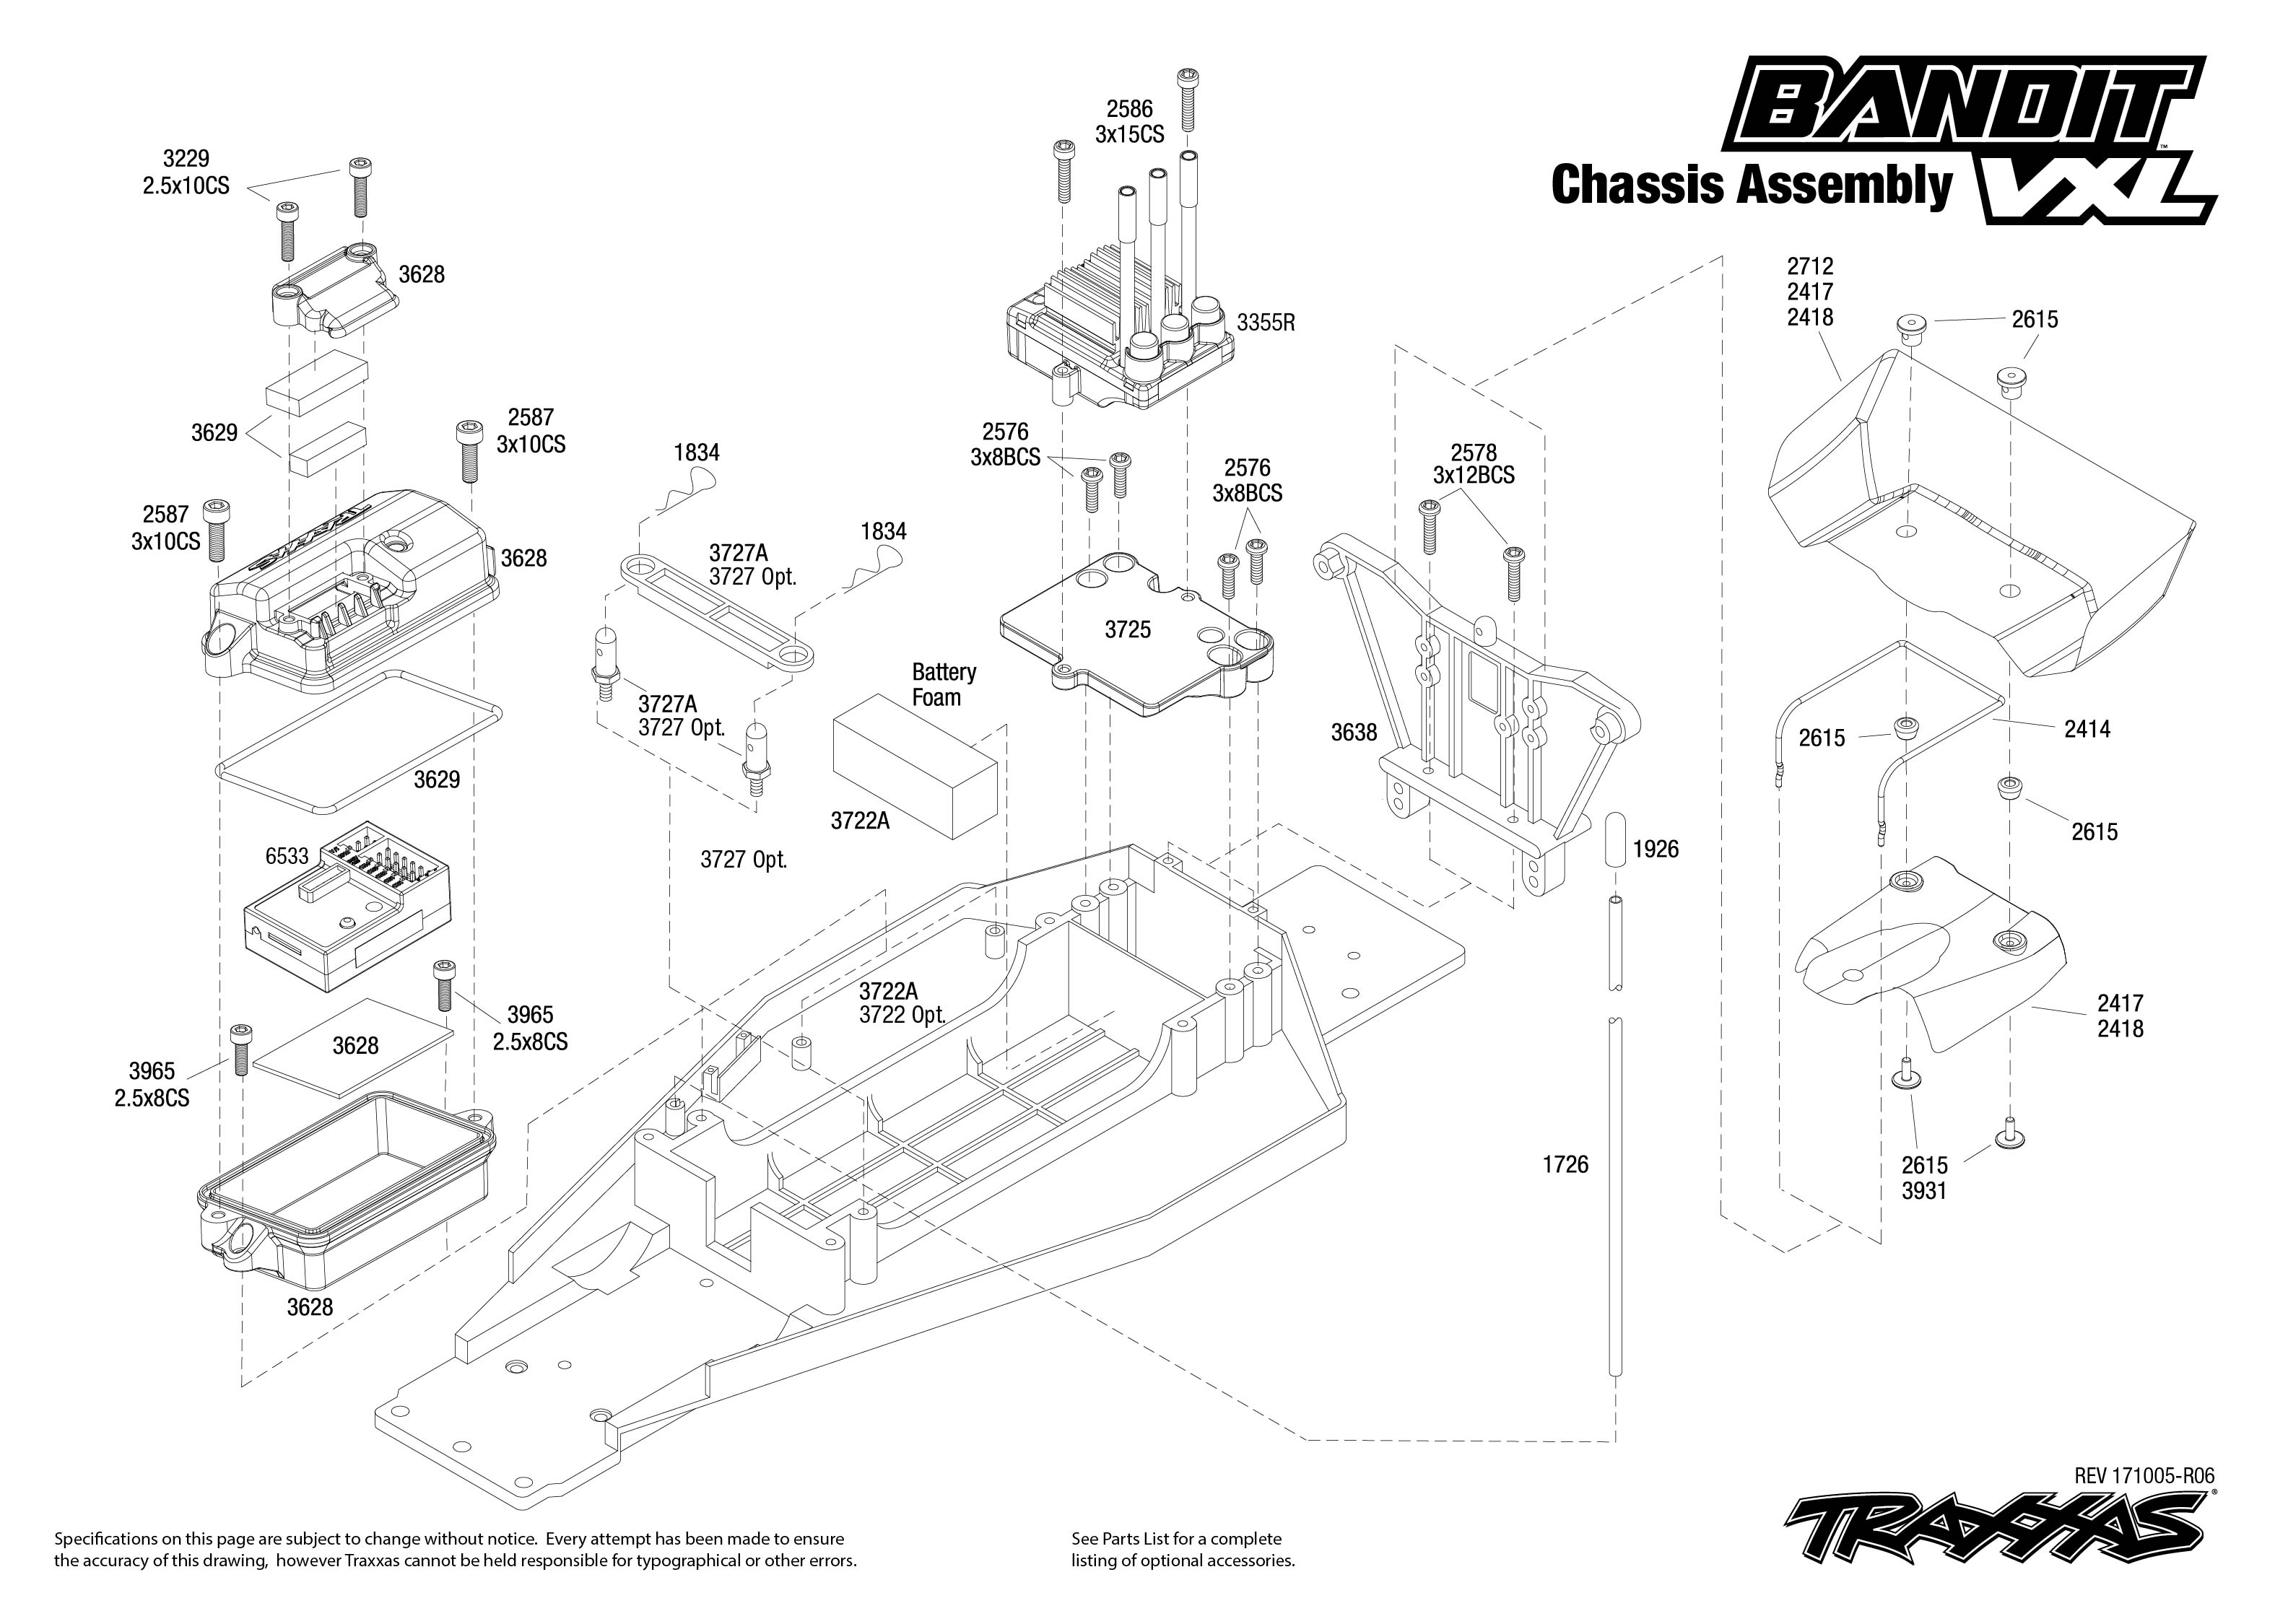 Bandit Vxl 3 Chassis Assembly Exploded View